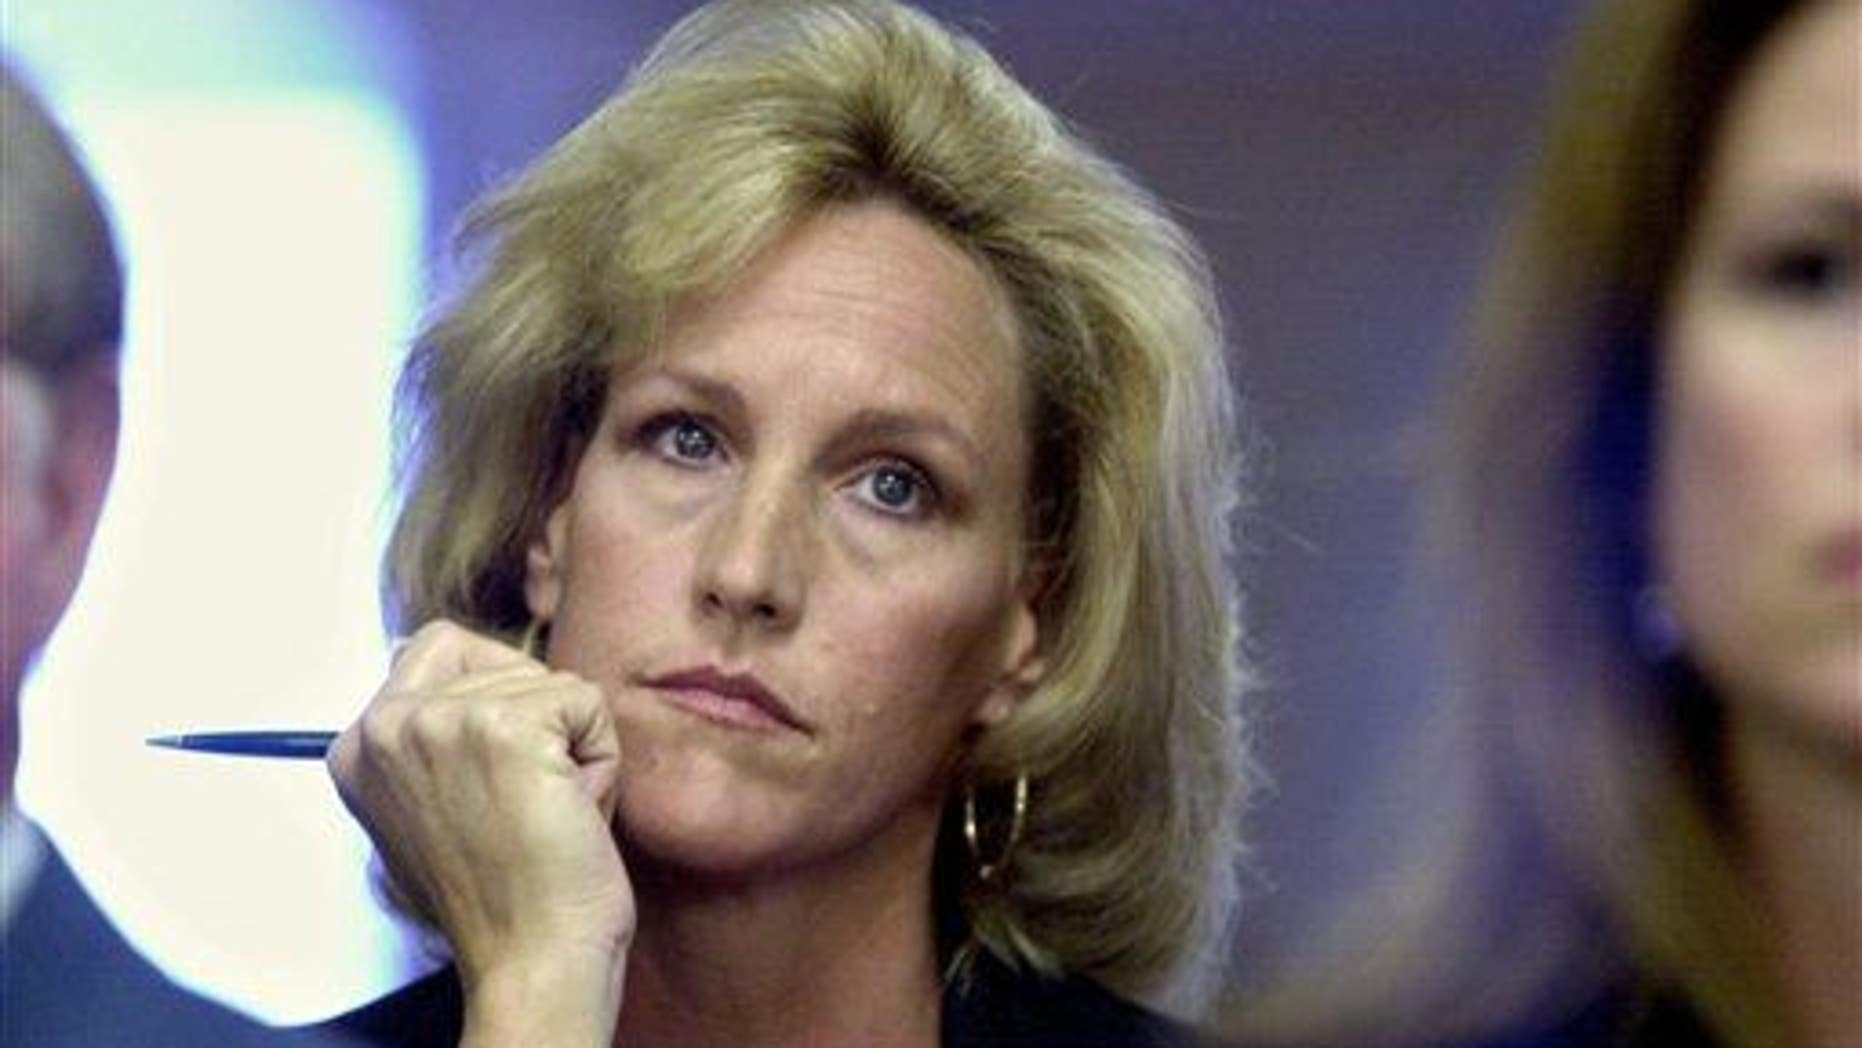 In a Friday, September 15, 2000 photo, Erin Brockovich listens to a presentation to the Los Angeles City Council by the Los Angeles Department of Water and Power.